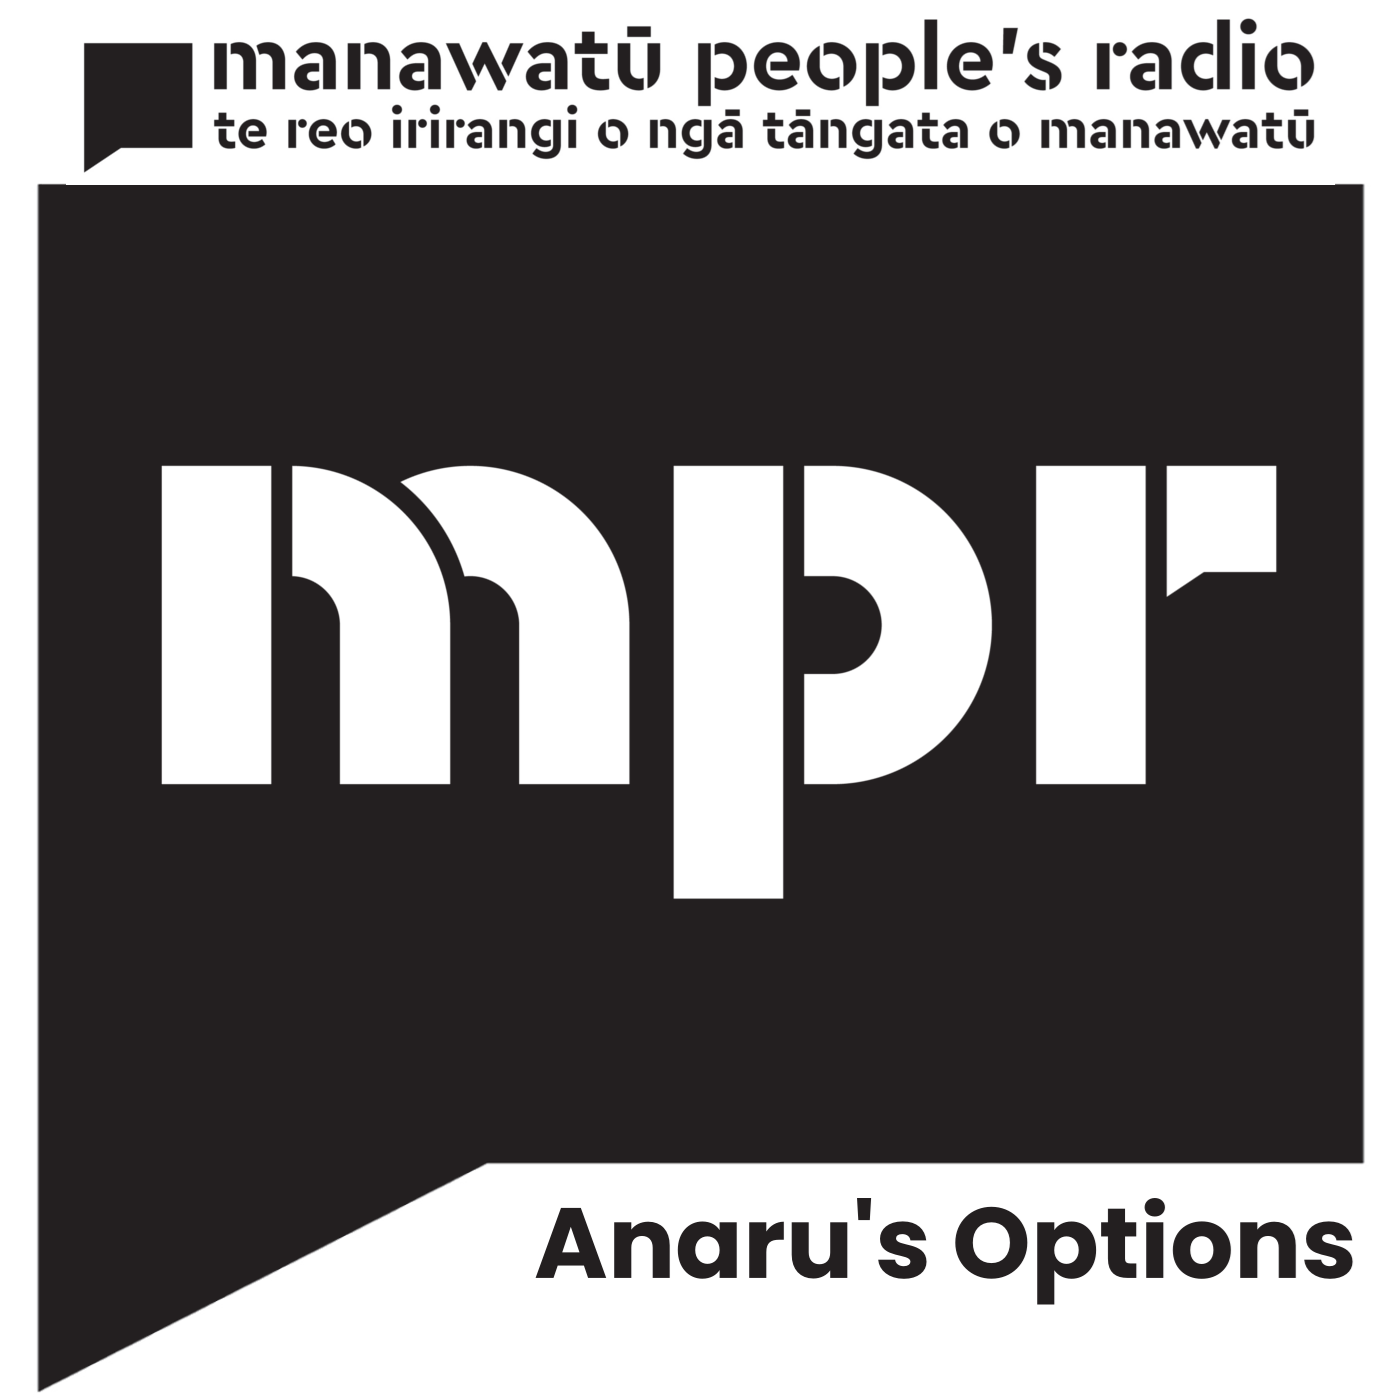 Anaru's Options